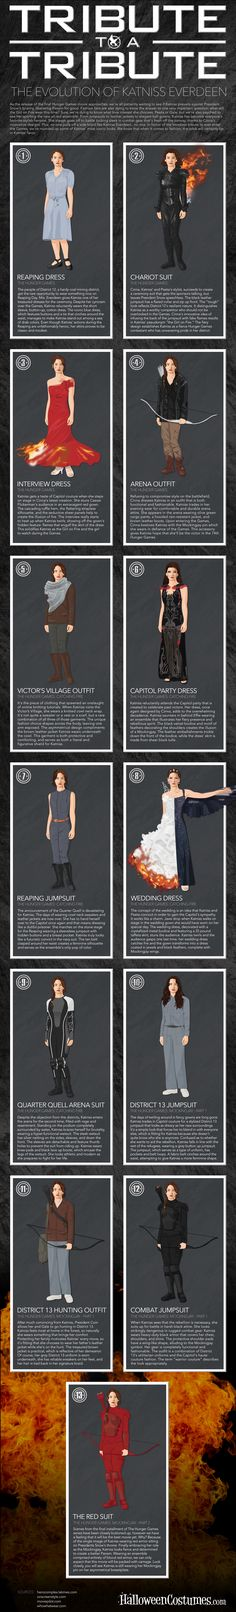 "Tribute to a Tribute: The Evolution of Katniss Everdeen [Infographic] Tribute to a Tribute: The Evolution of Katniss Everdeen [Infographic] Related posts:Watch The Final ""Hunger Games: Mockingjay, Part Trailer Before. Hunger Games Costume, Hunger Games Memes, Hunger Games Fandom, Hunger Games Catching Fire, Hunger Games Trilogy, Katniss Costume, Hunger Games Outfits, Hunger Games Party, Katniss Everdeen"